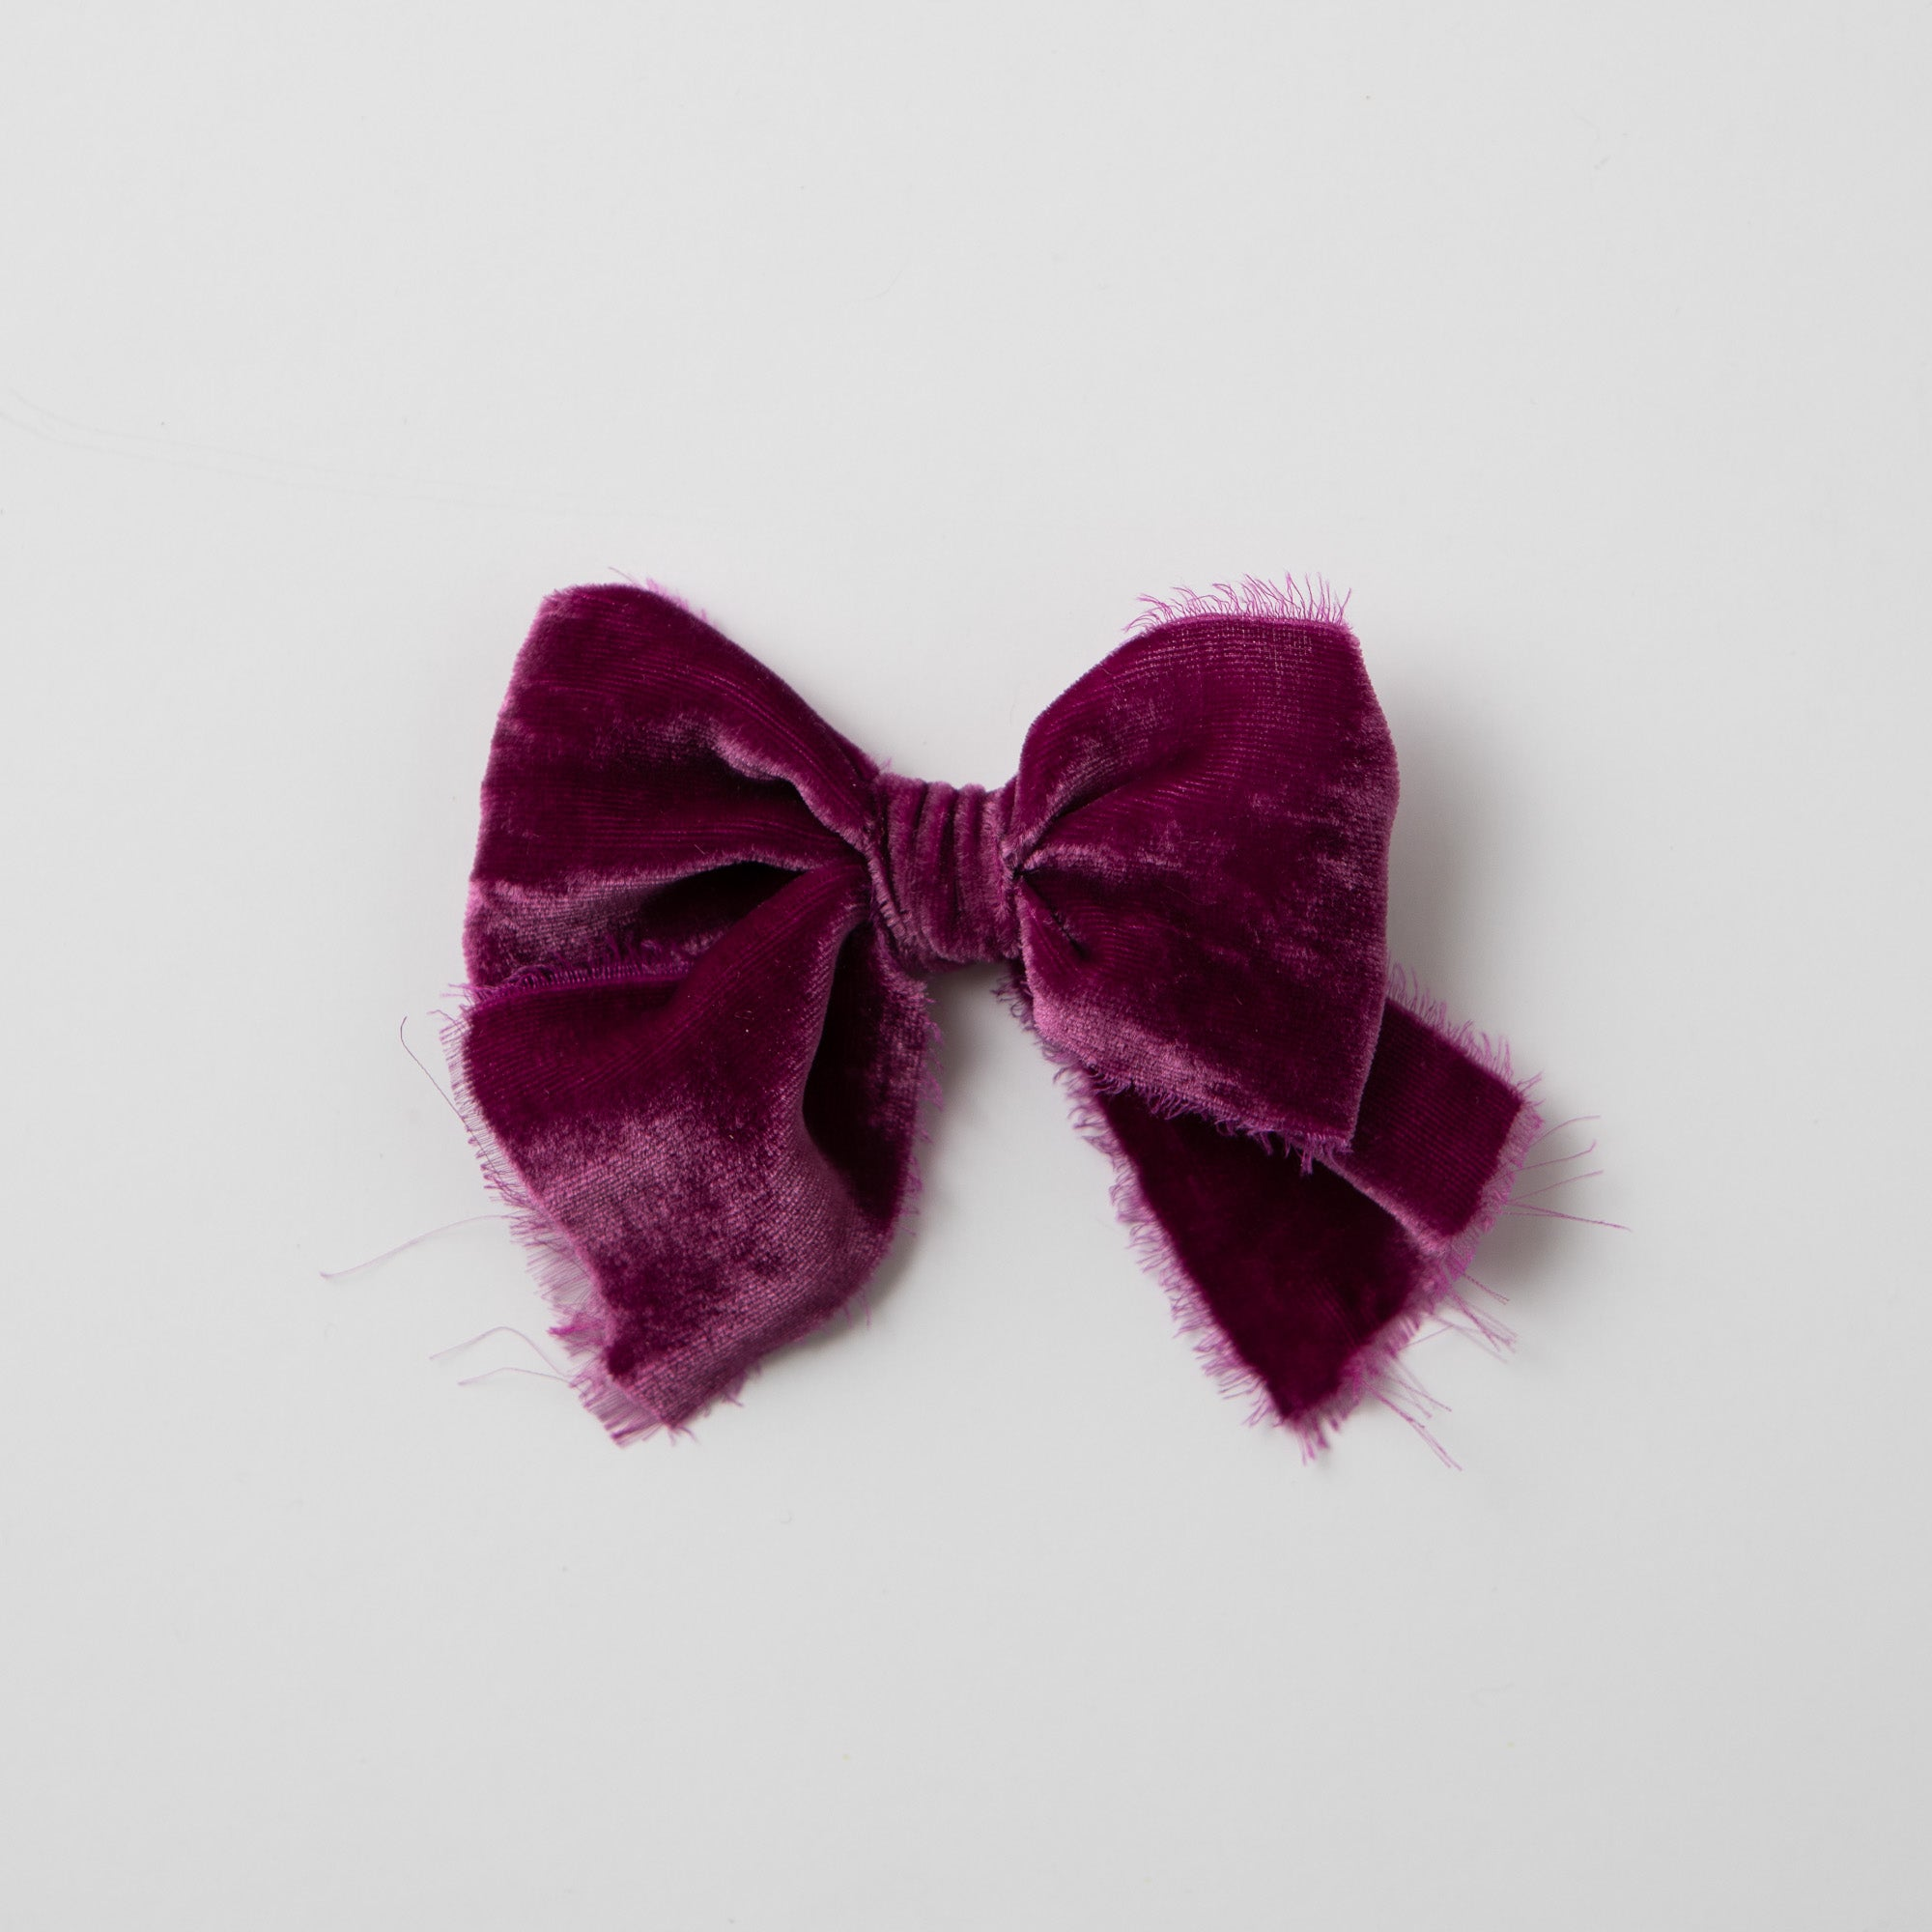 Hand Tied Velvet Bow (multiple color options)